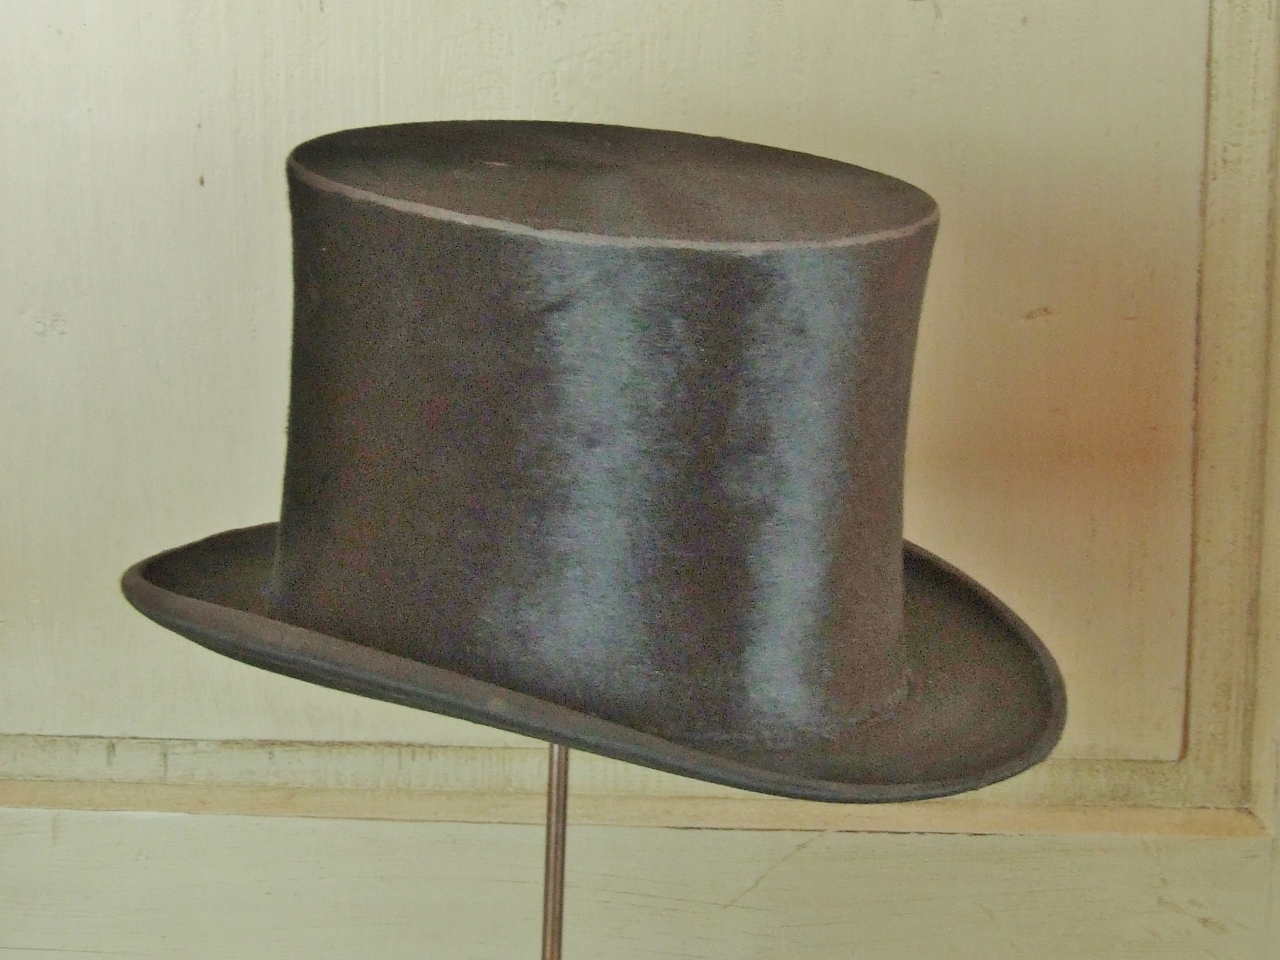 B371 - Divine Antique Top Quality, Silk Plush Top Hat, PARIS / BRUXELLES Label, C1910